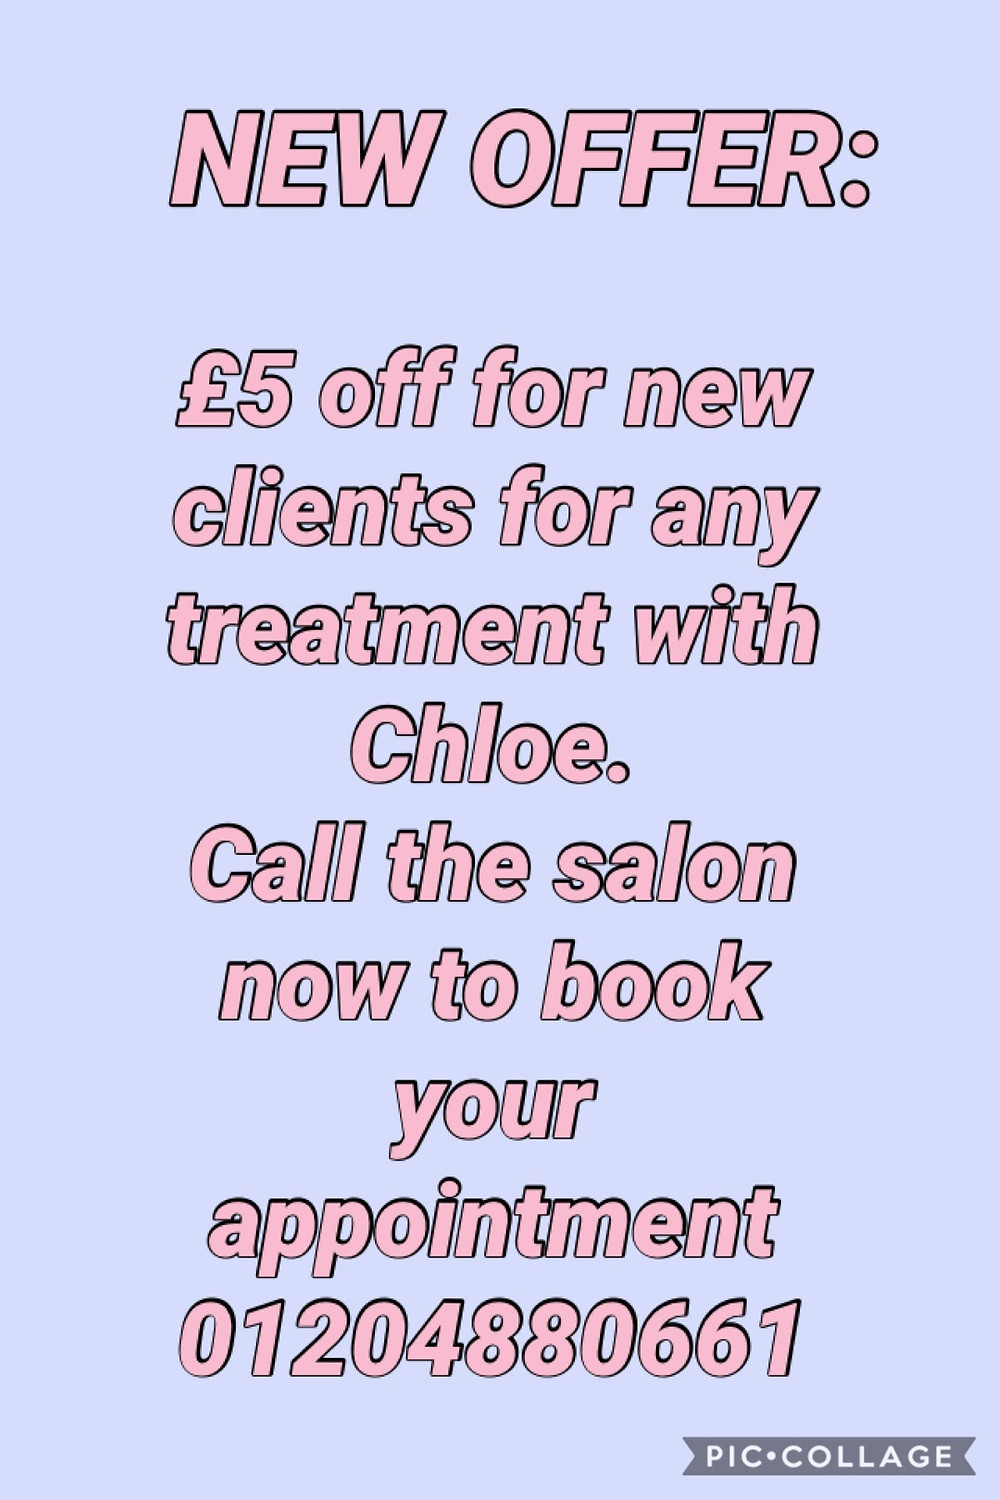 Welcoming all new clients with this £5 off offer